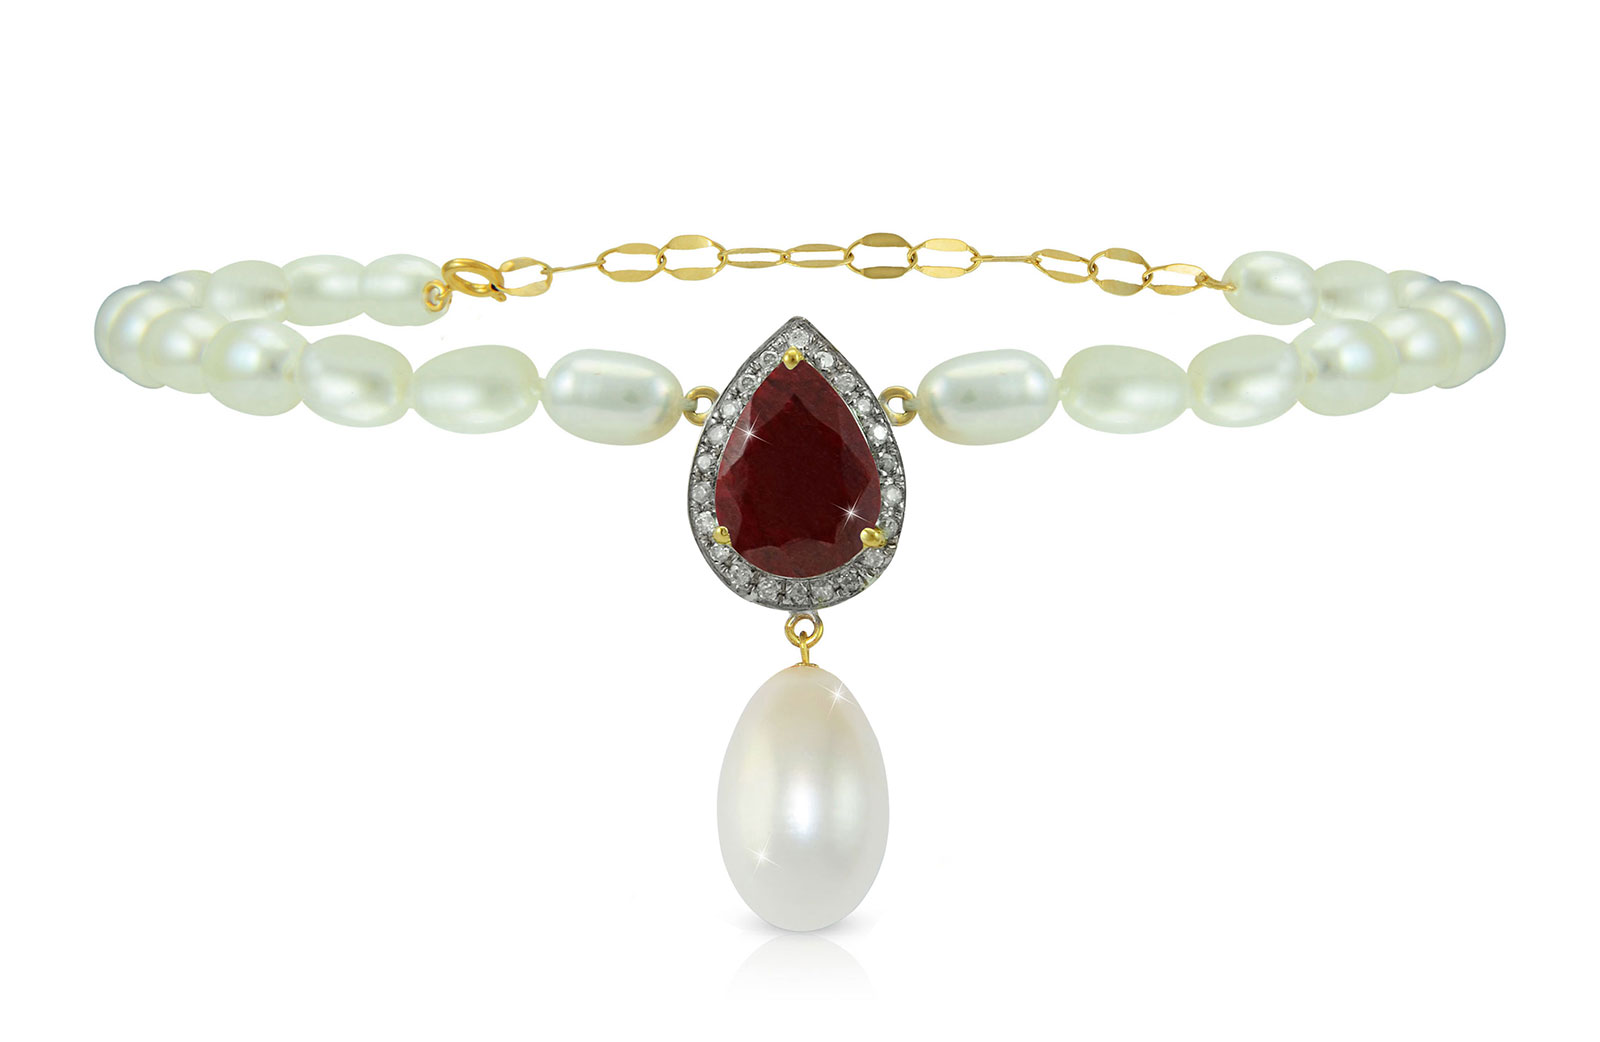 Vera Perla 18K Gold 0.12ct Diamonds, Royal Indian Ruby and 13mm Pearl Bracelet